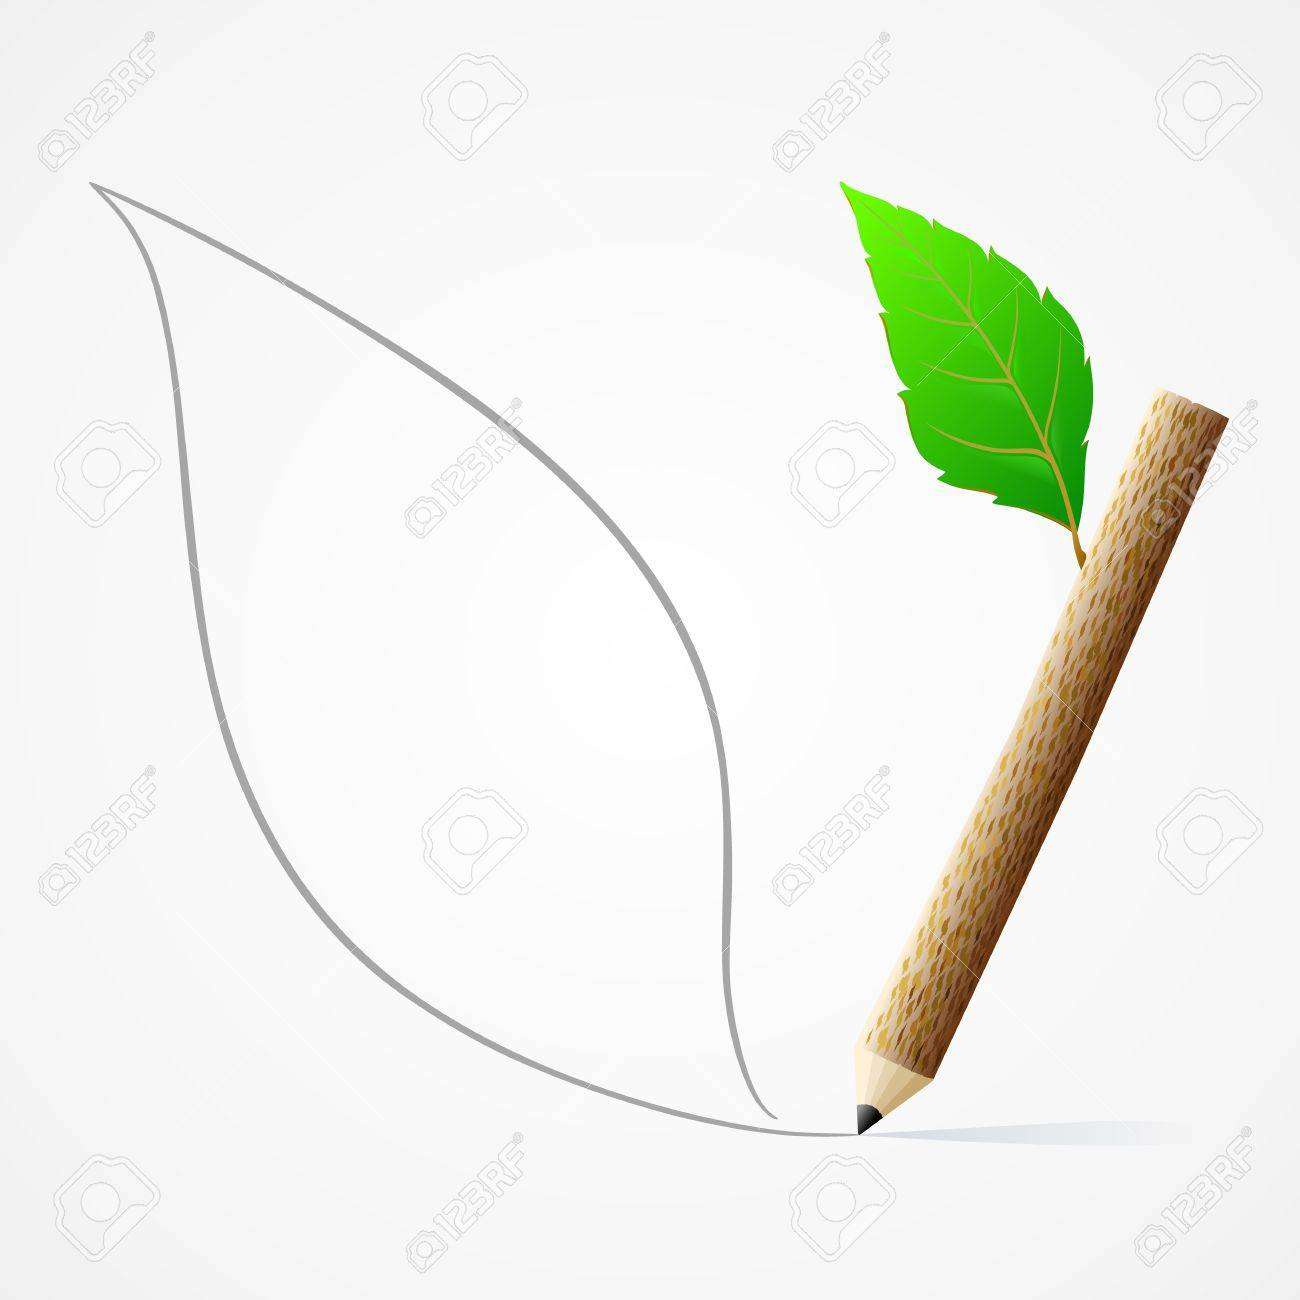 Pencil drawing leaf stock vector 16823890